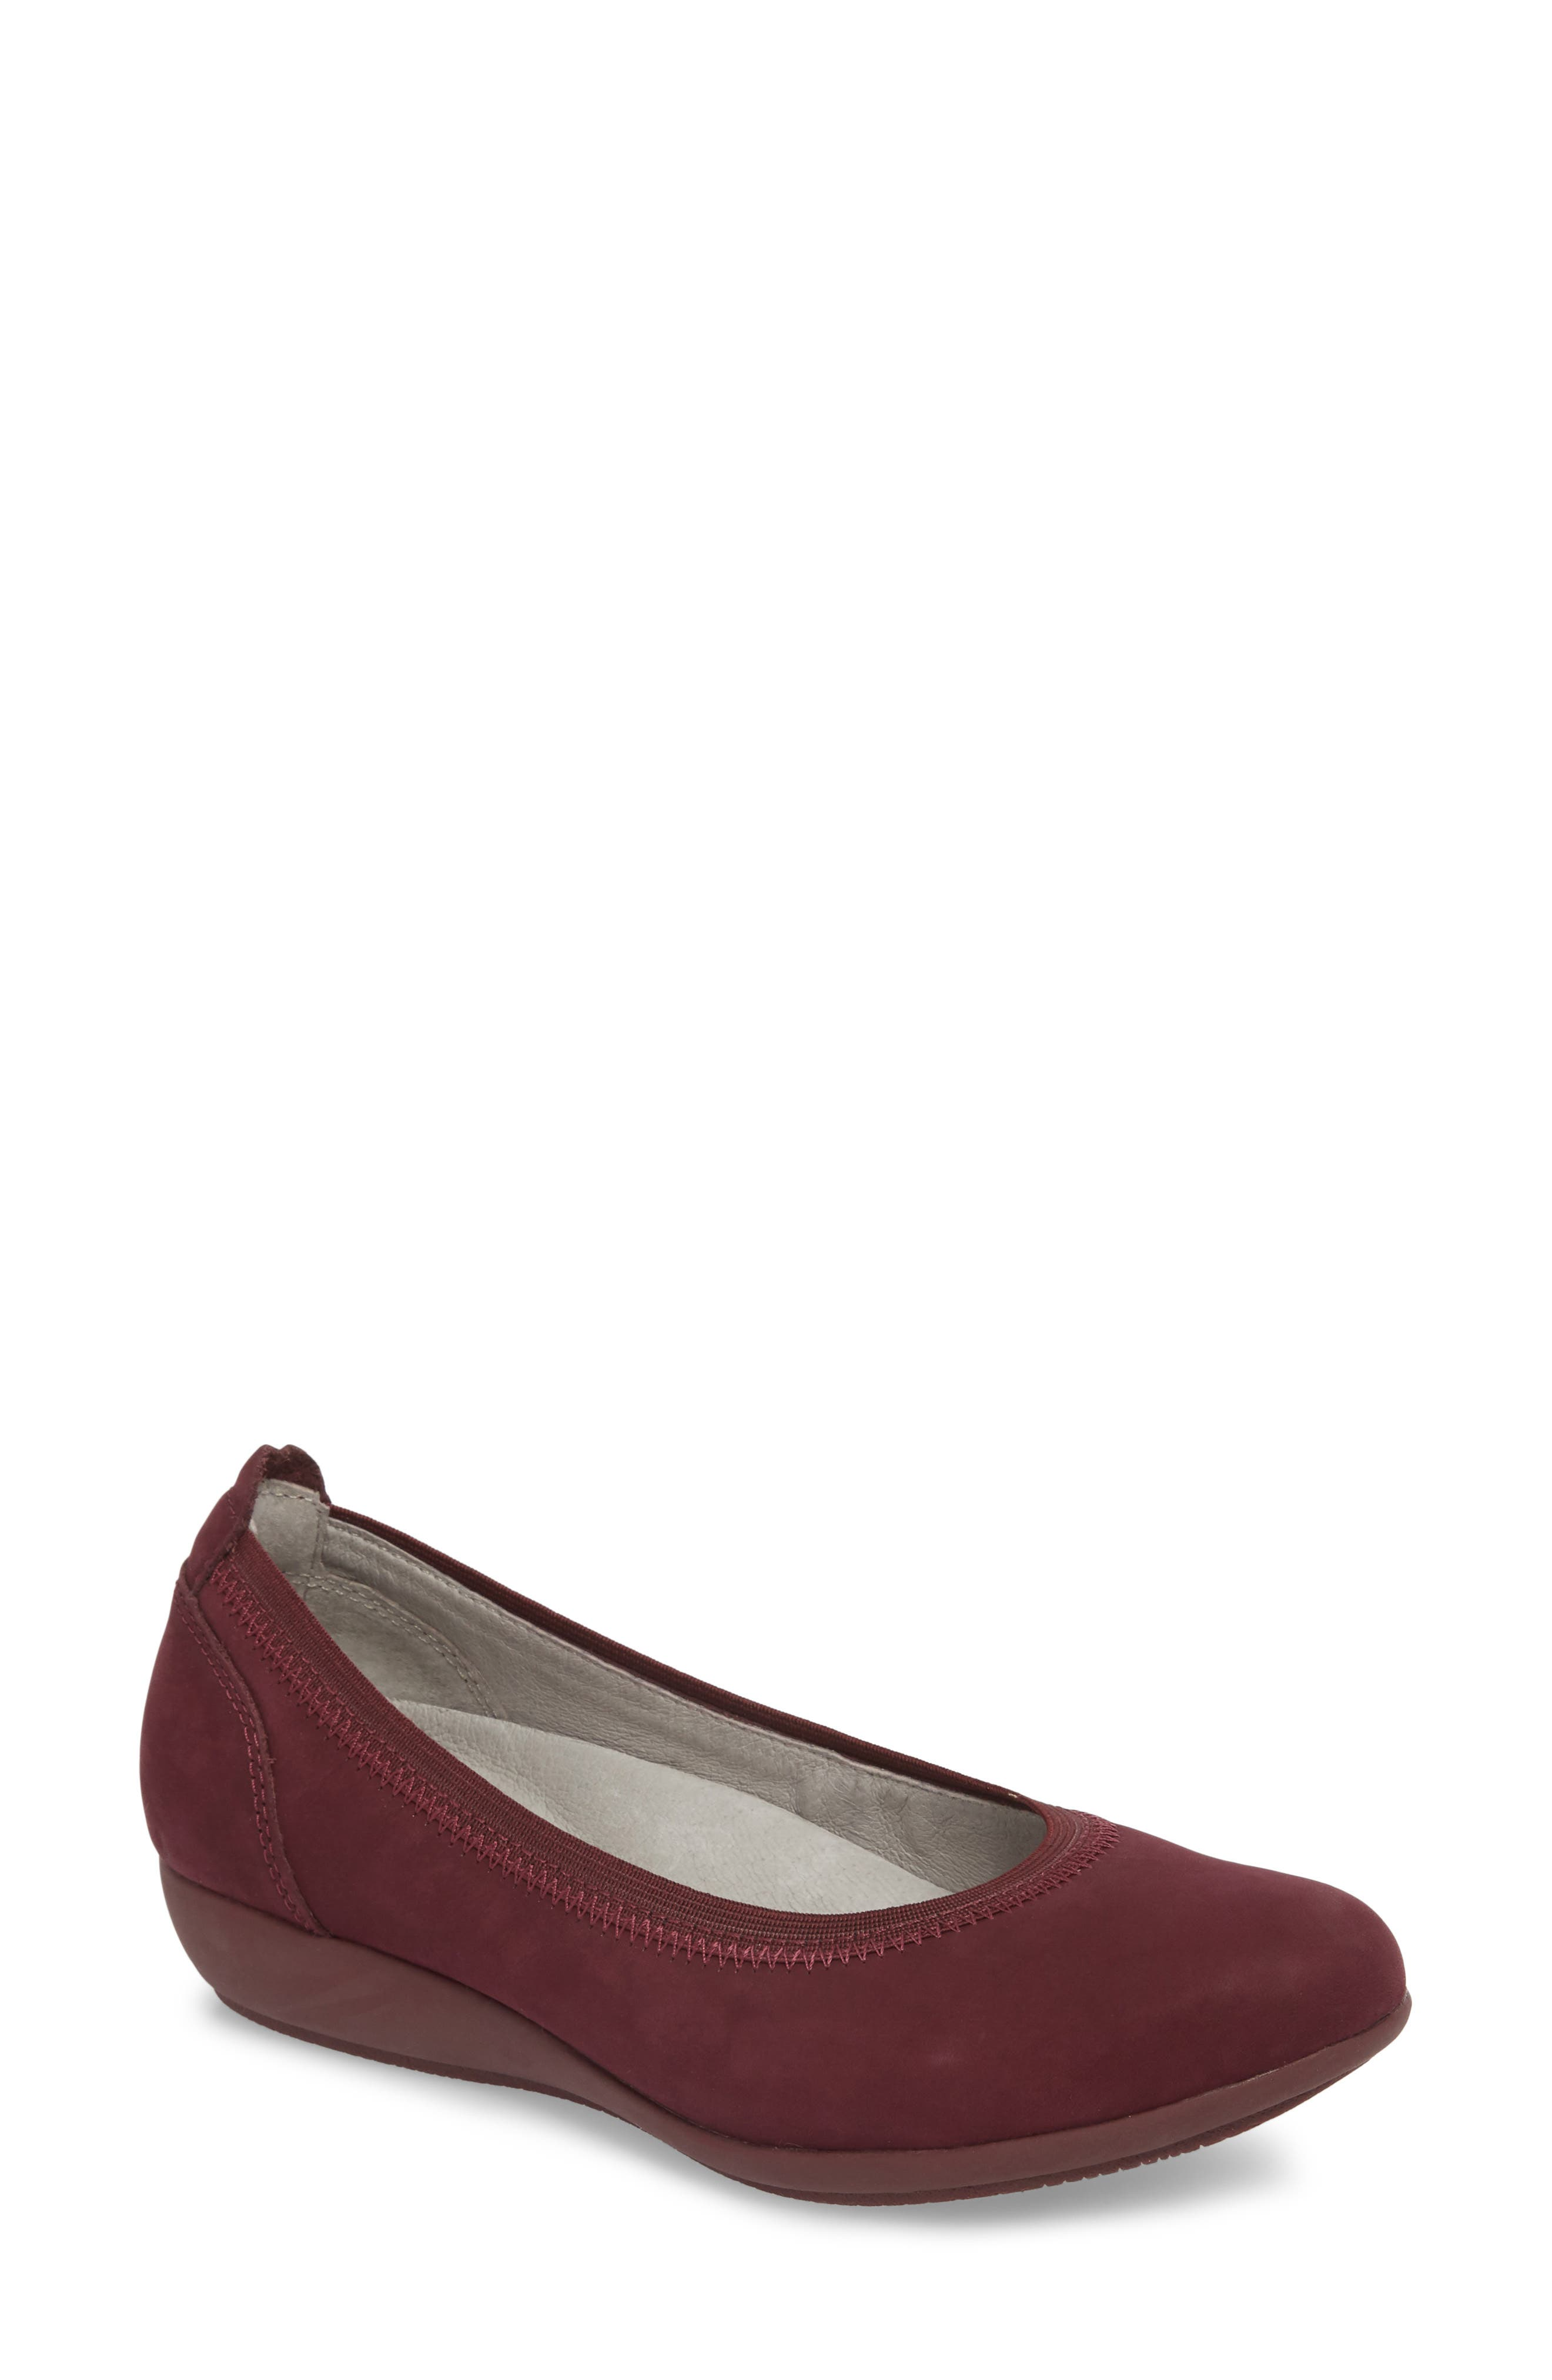 Kristen Ballet Flat,                             Main thumbnail 1, color,                             WINE MILLED NUBUCK